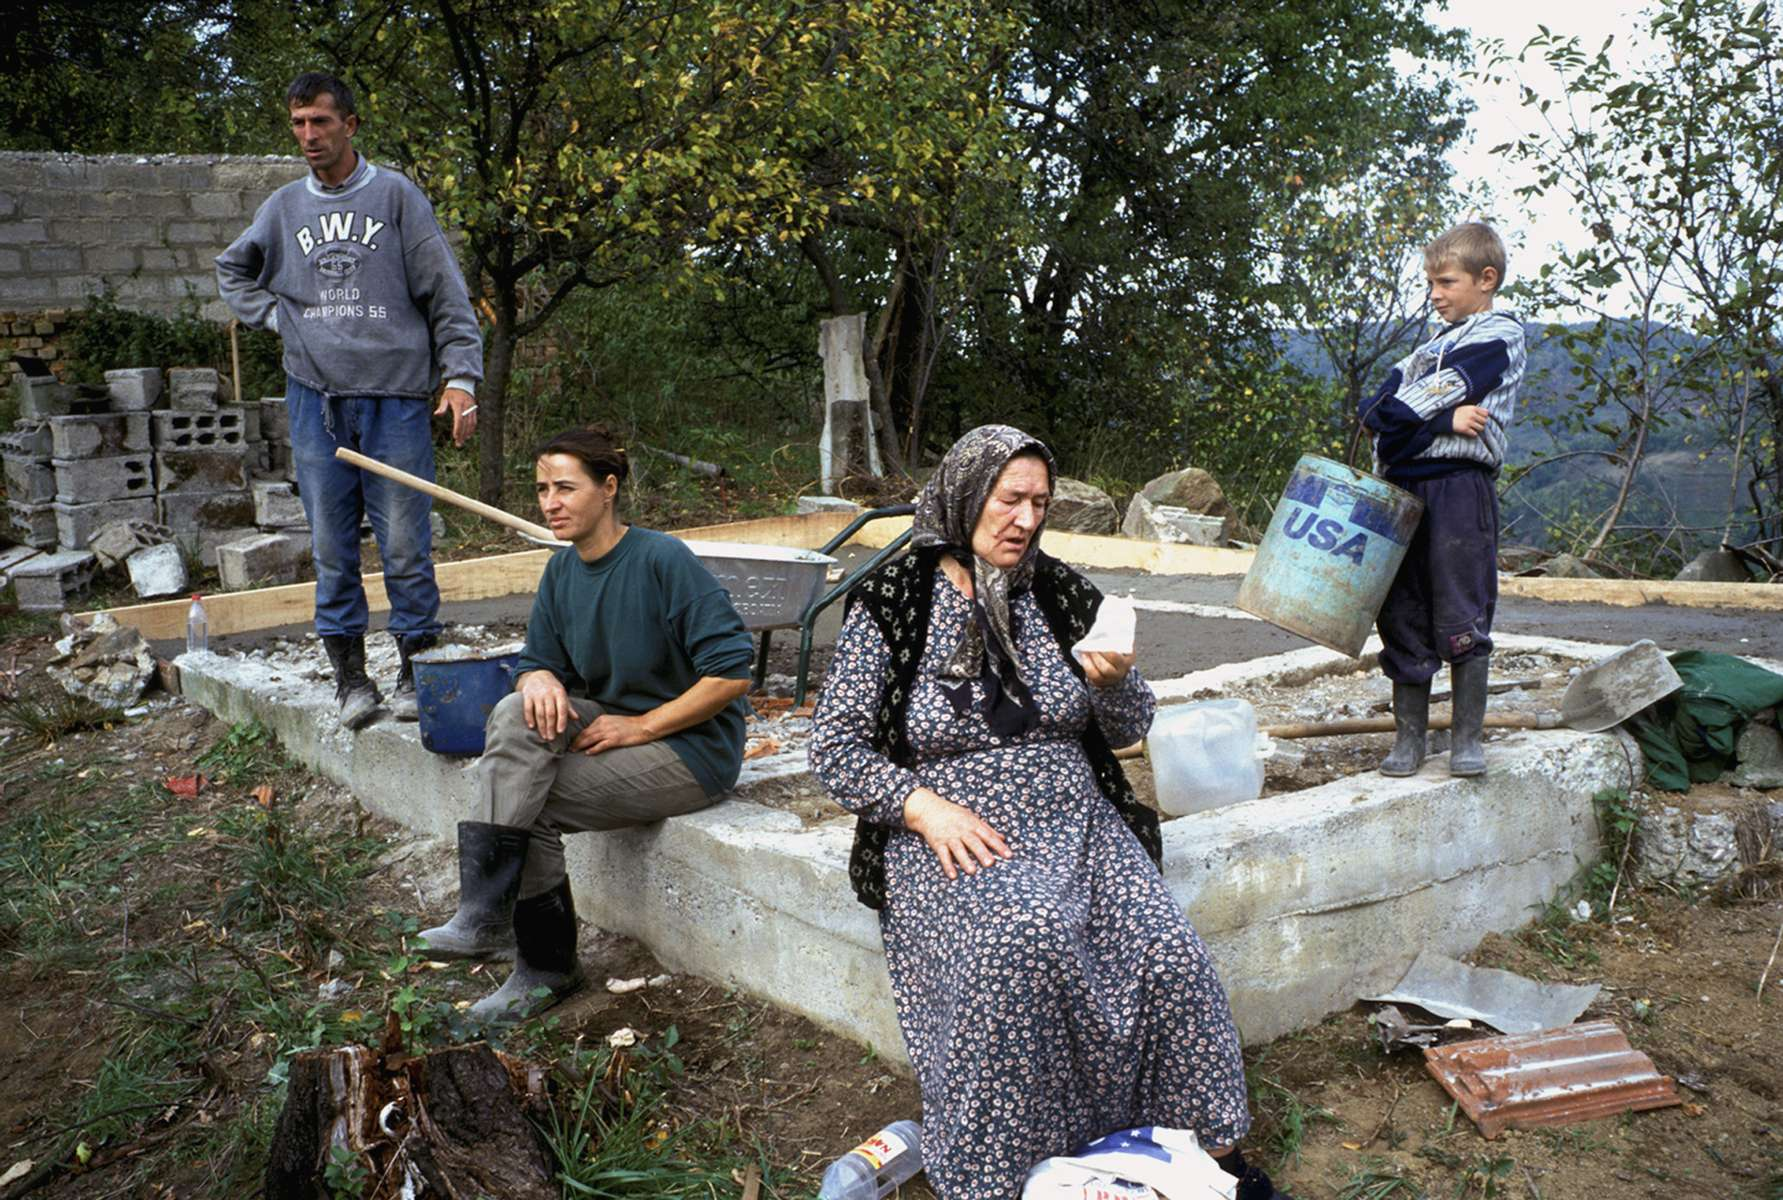 In the hills above Srebrenica, a Muslim family returns to rebuild a house destroyed during the war. By the year 2000, when record numbers of Bosnians finally felt safe enough to begin returning home, the international community began to suffer \{quote}Bosnia fatigue,\{quote} withdrawing resources and moving to other parts of the world. The result was that only 22 percent of those wanting to return home in 2000 received aid to do so, despite the fact that the right to return home was one of the founding principles of the Dayton Peace accords, which ended the war in late 1995. October 2000.